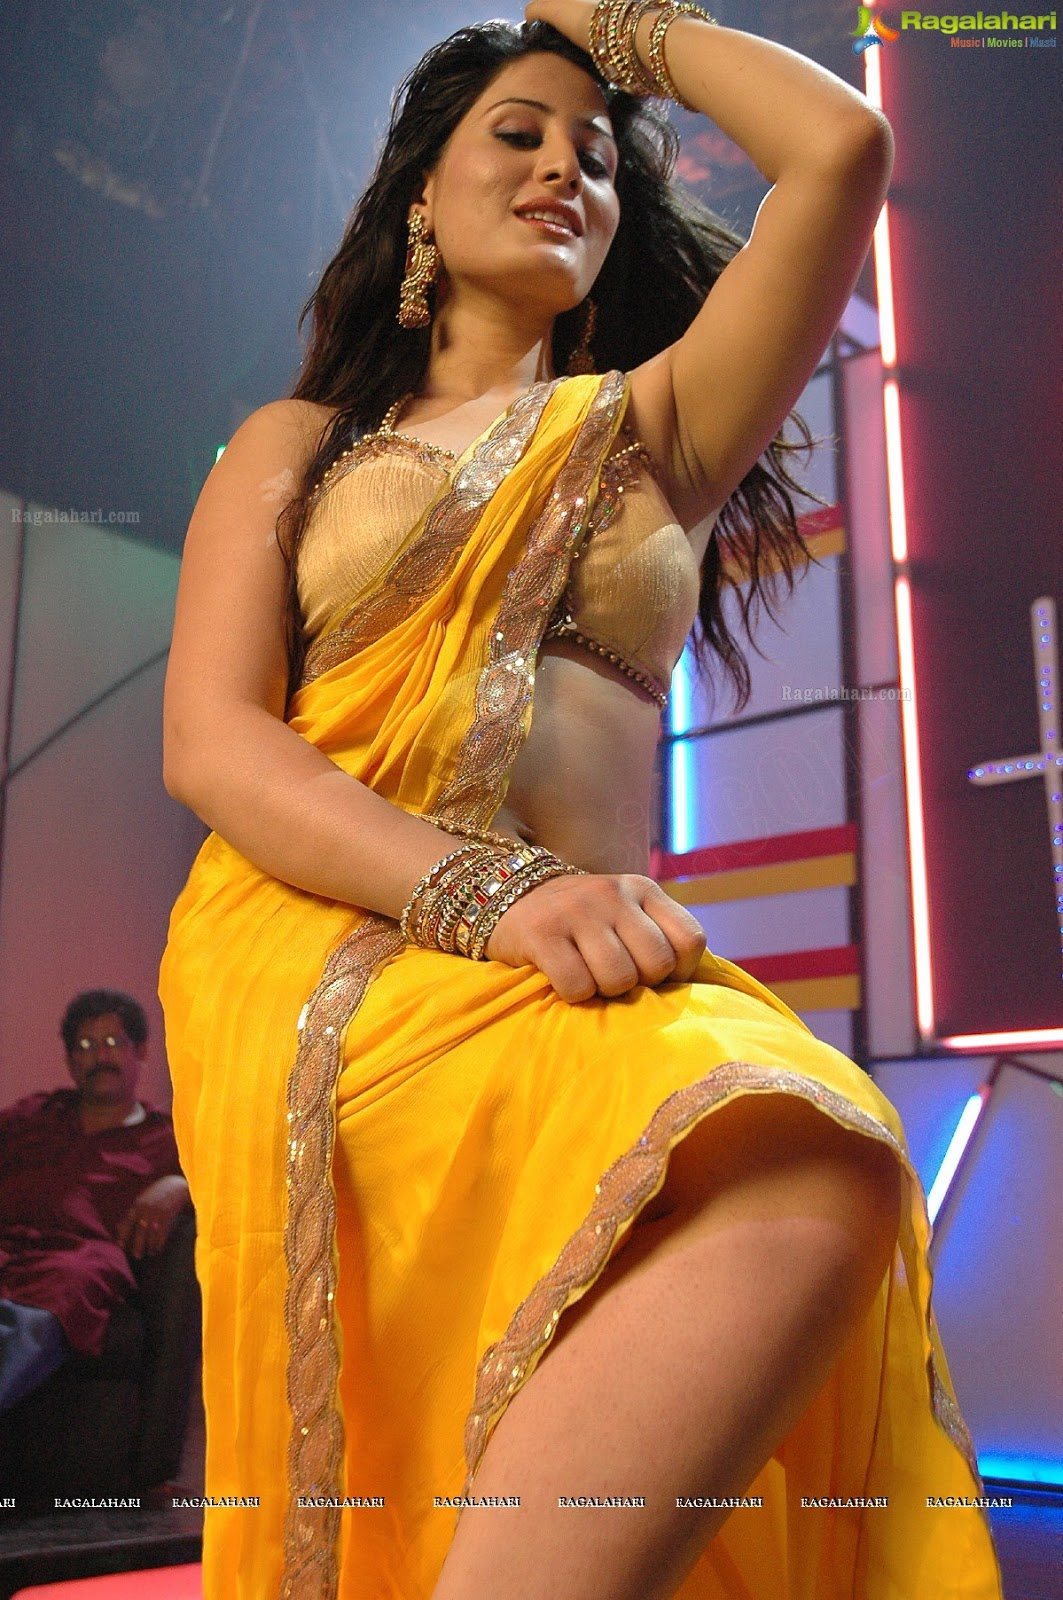 Ajju Hot Navel And Cleavage Show Photos In Saree From Item